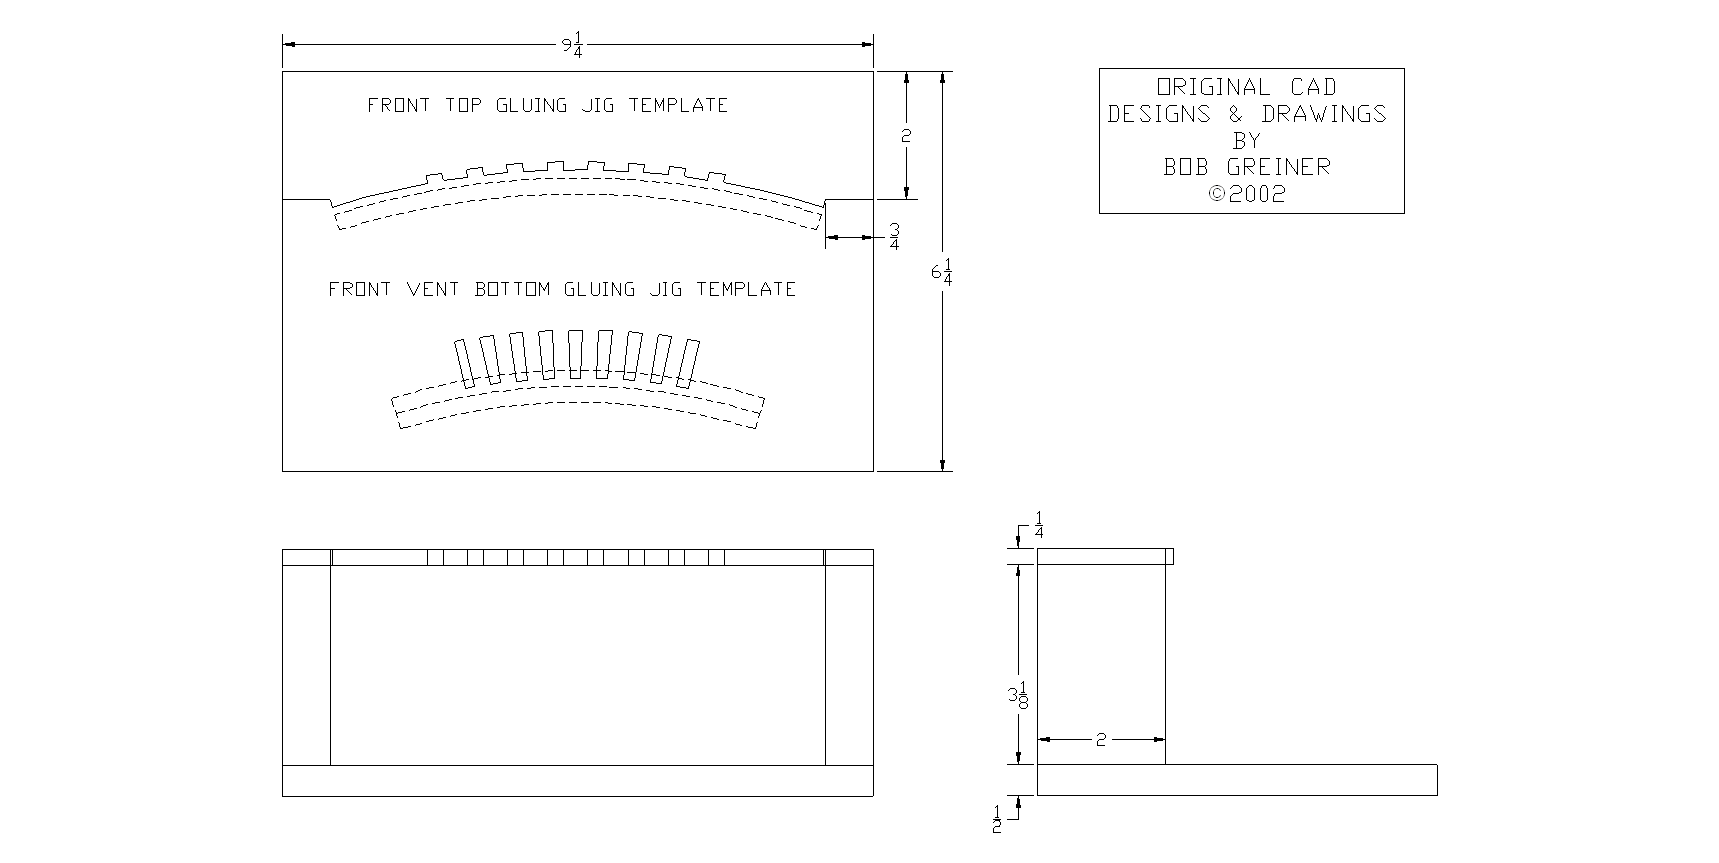 AutoCAD LT Drawing